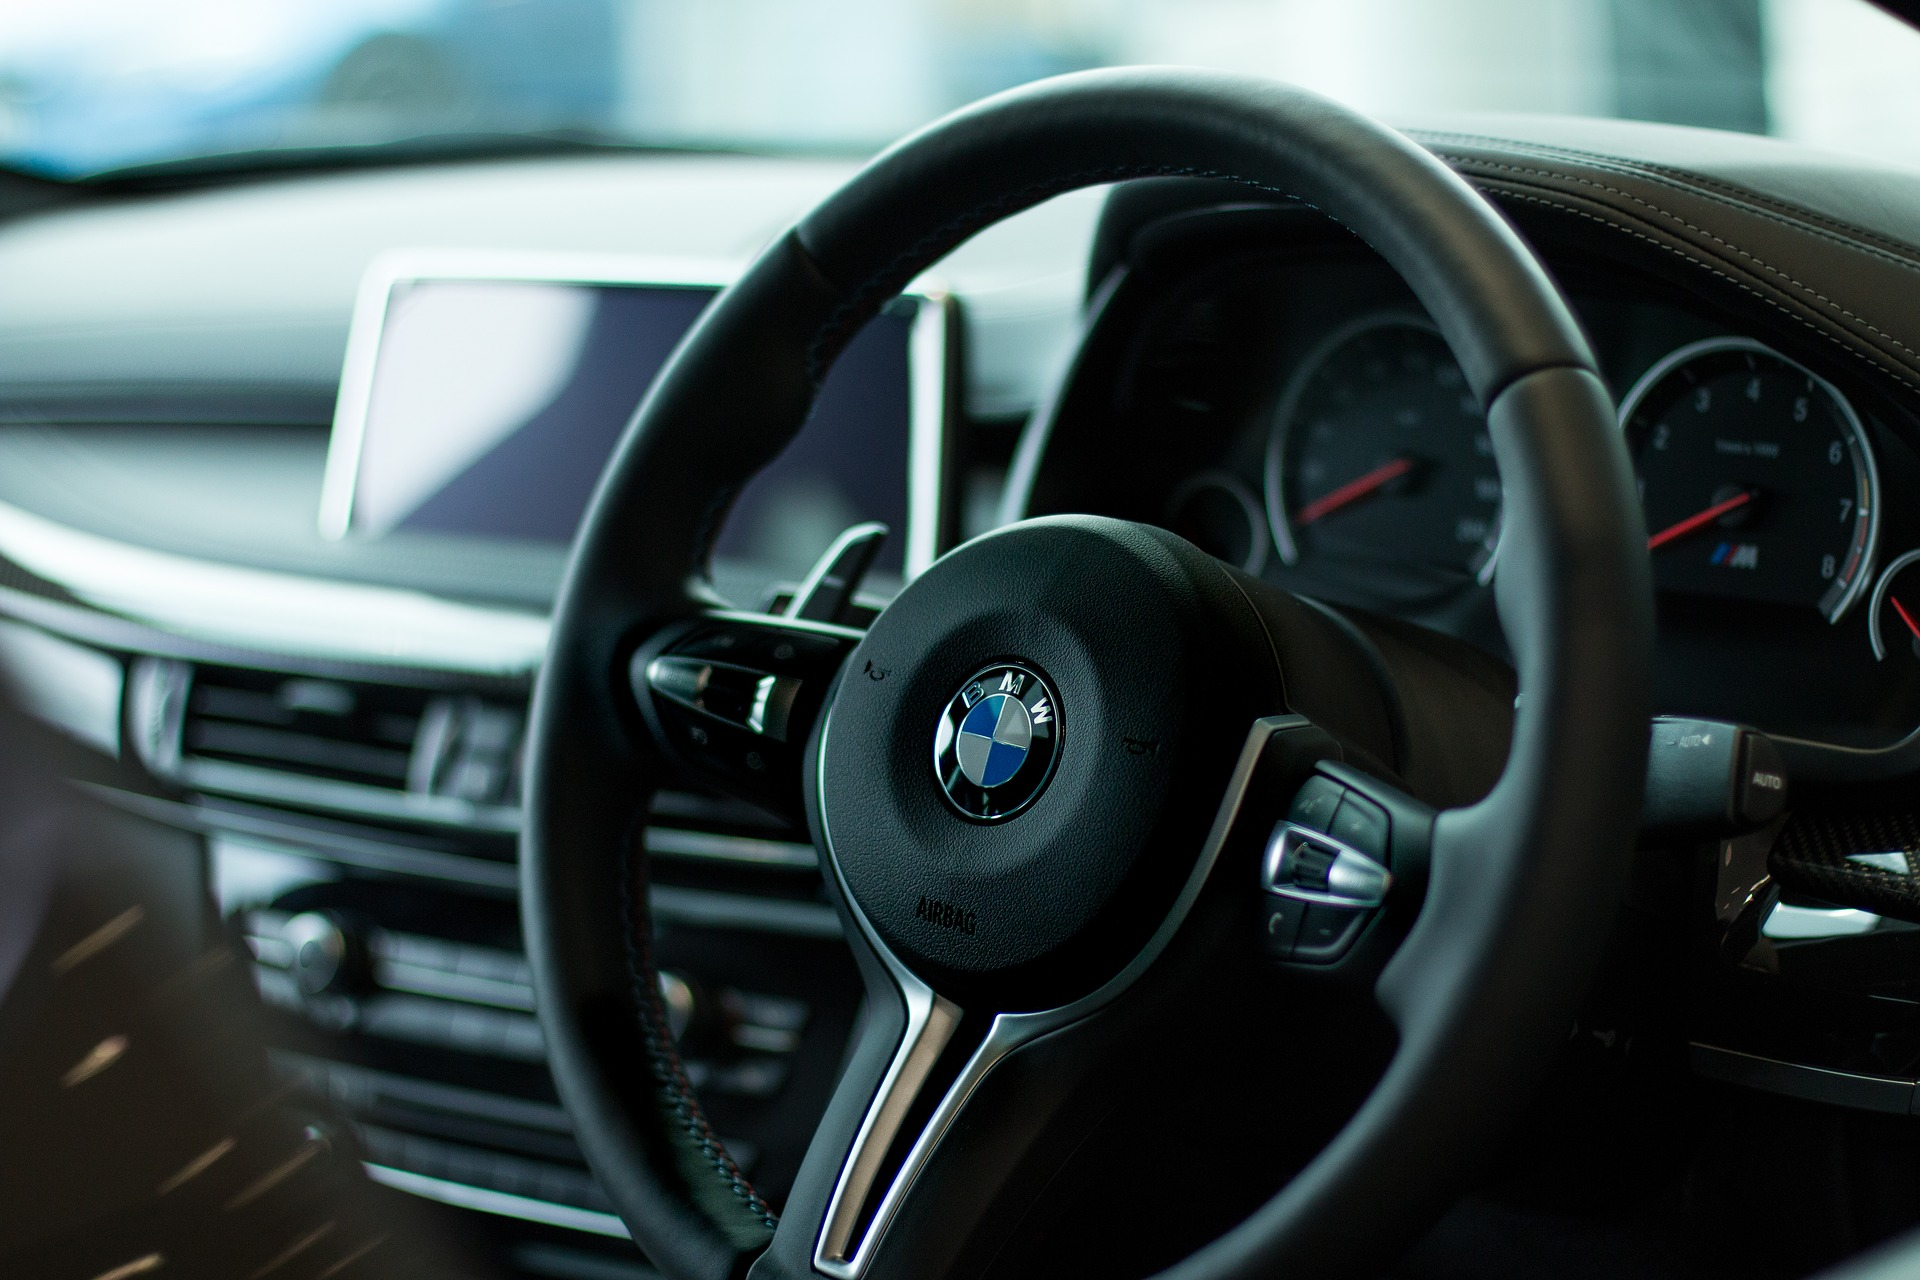 Why is Company Car and Pool Car Confusion Costly?